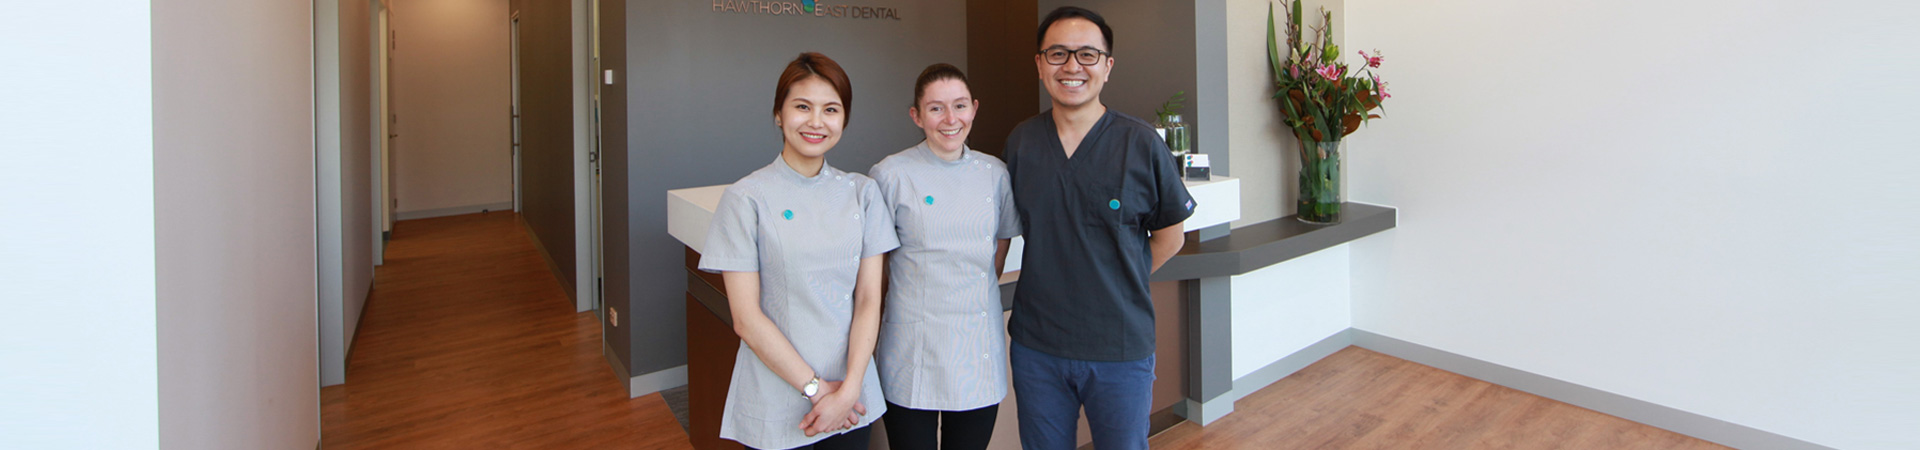 Tips to Find Best Dentist in Melbourne For You